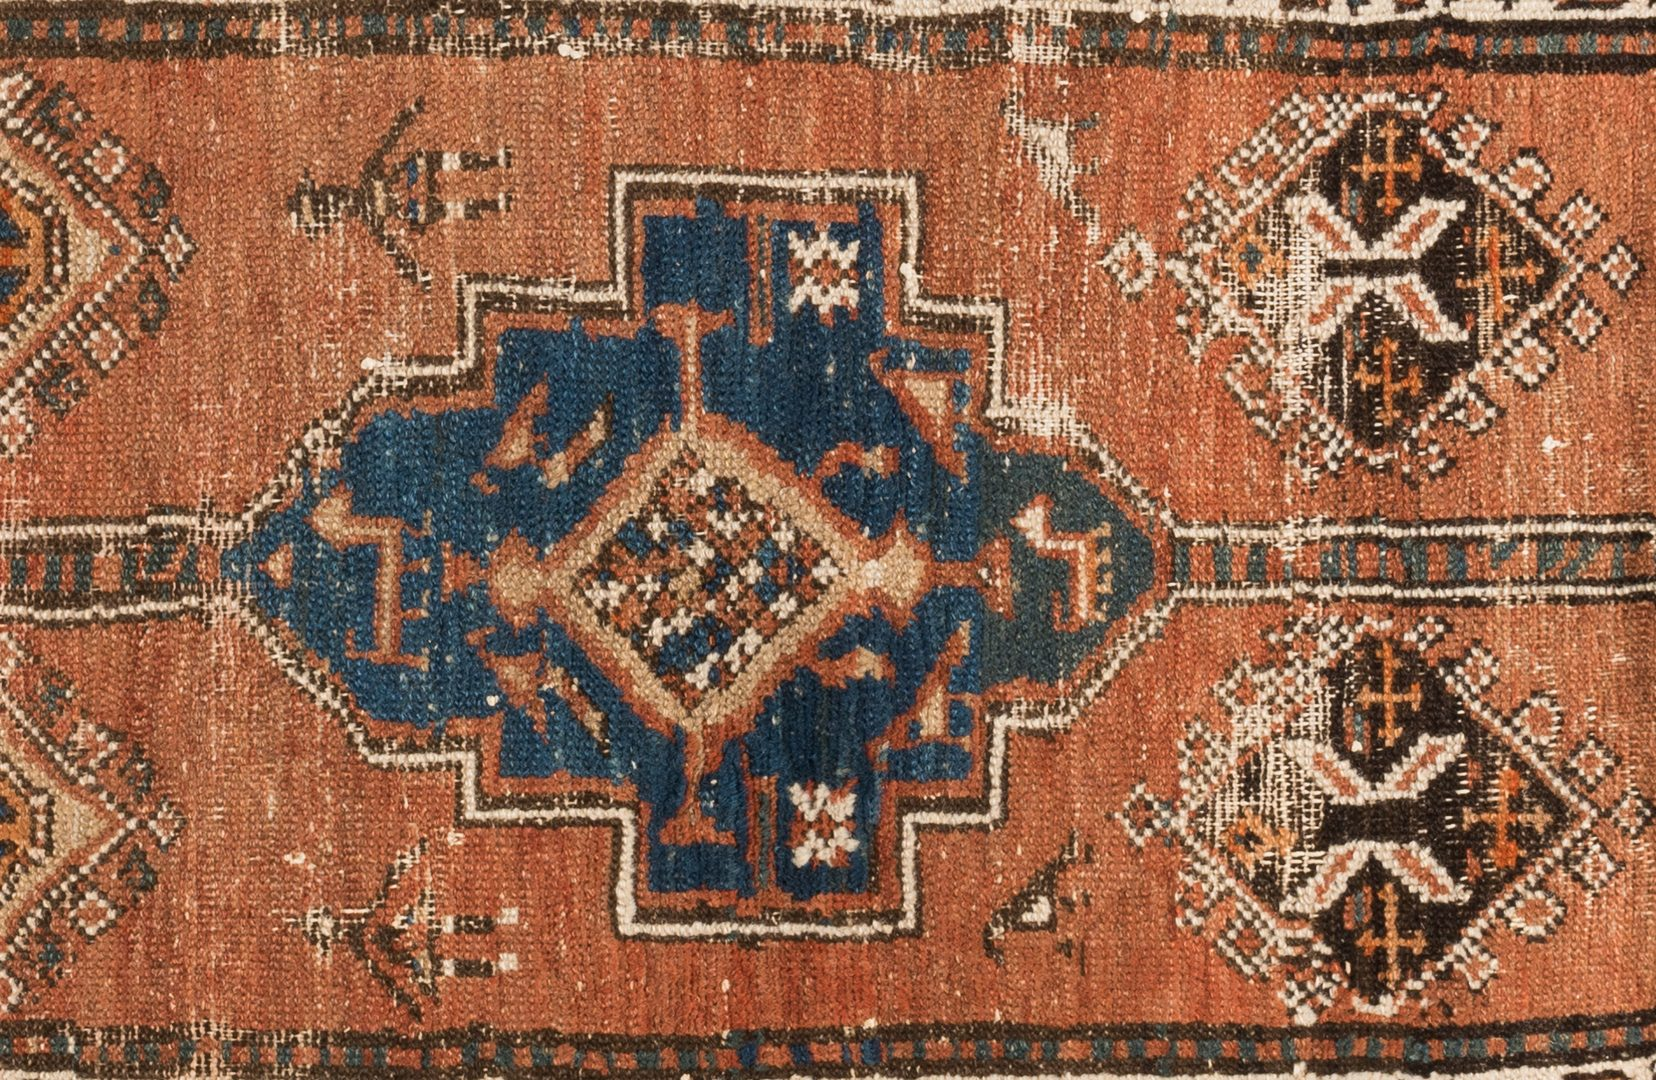 Lot 865: Antique Persian and Caucasian Runners